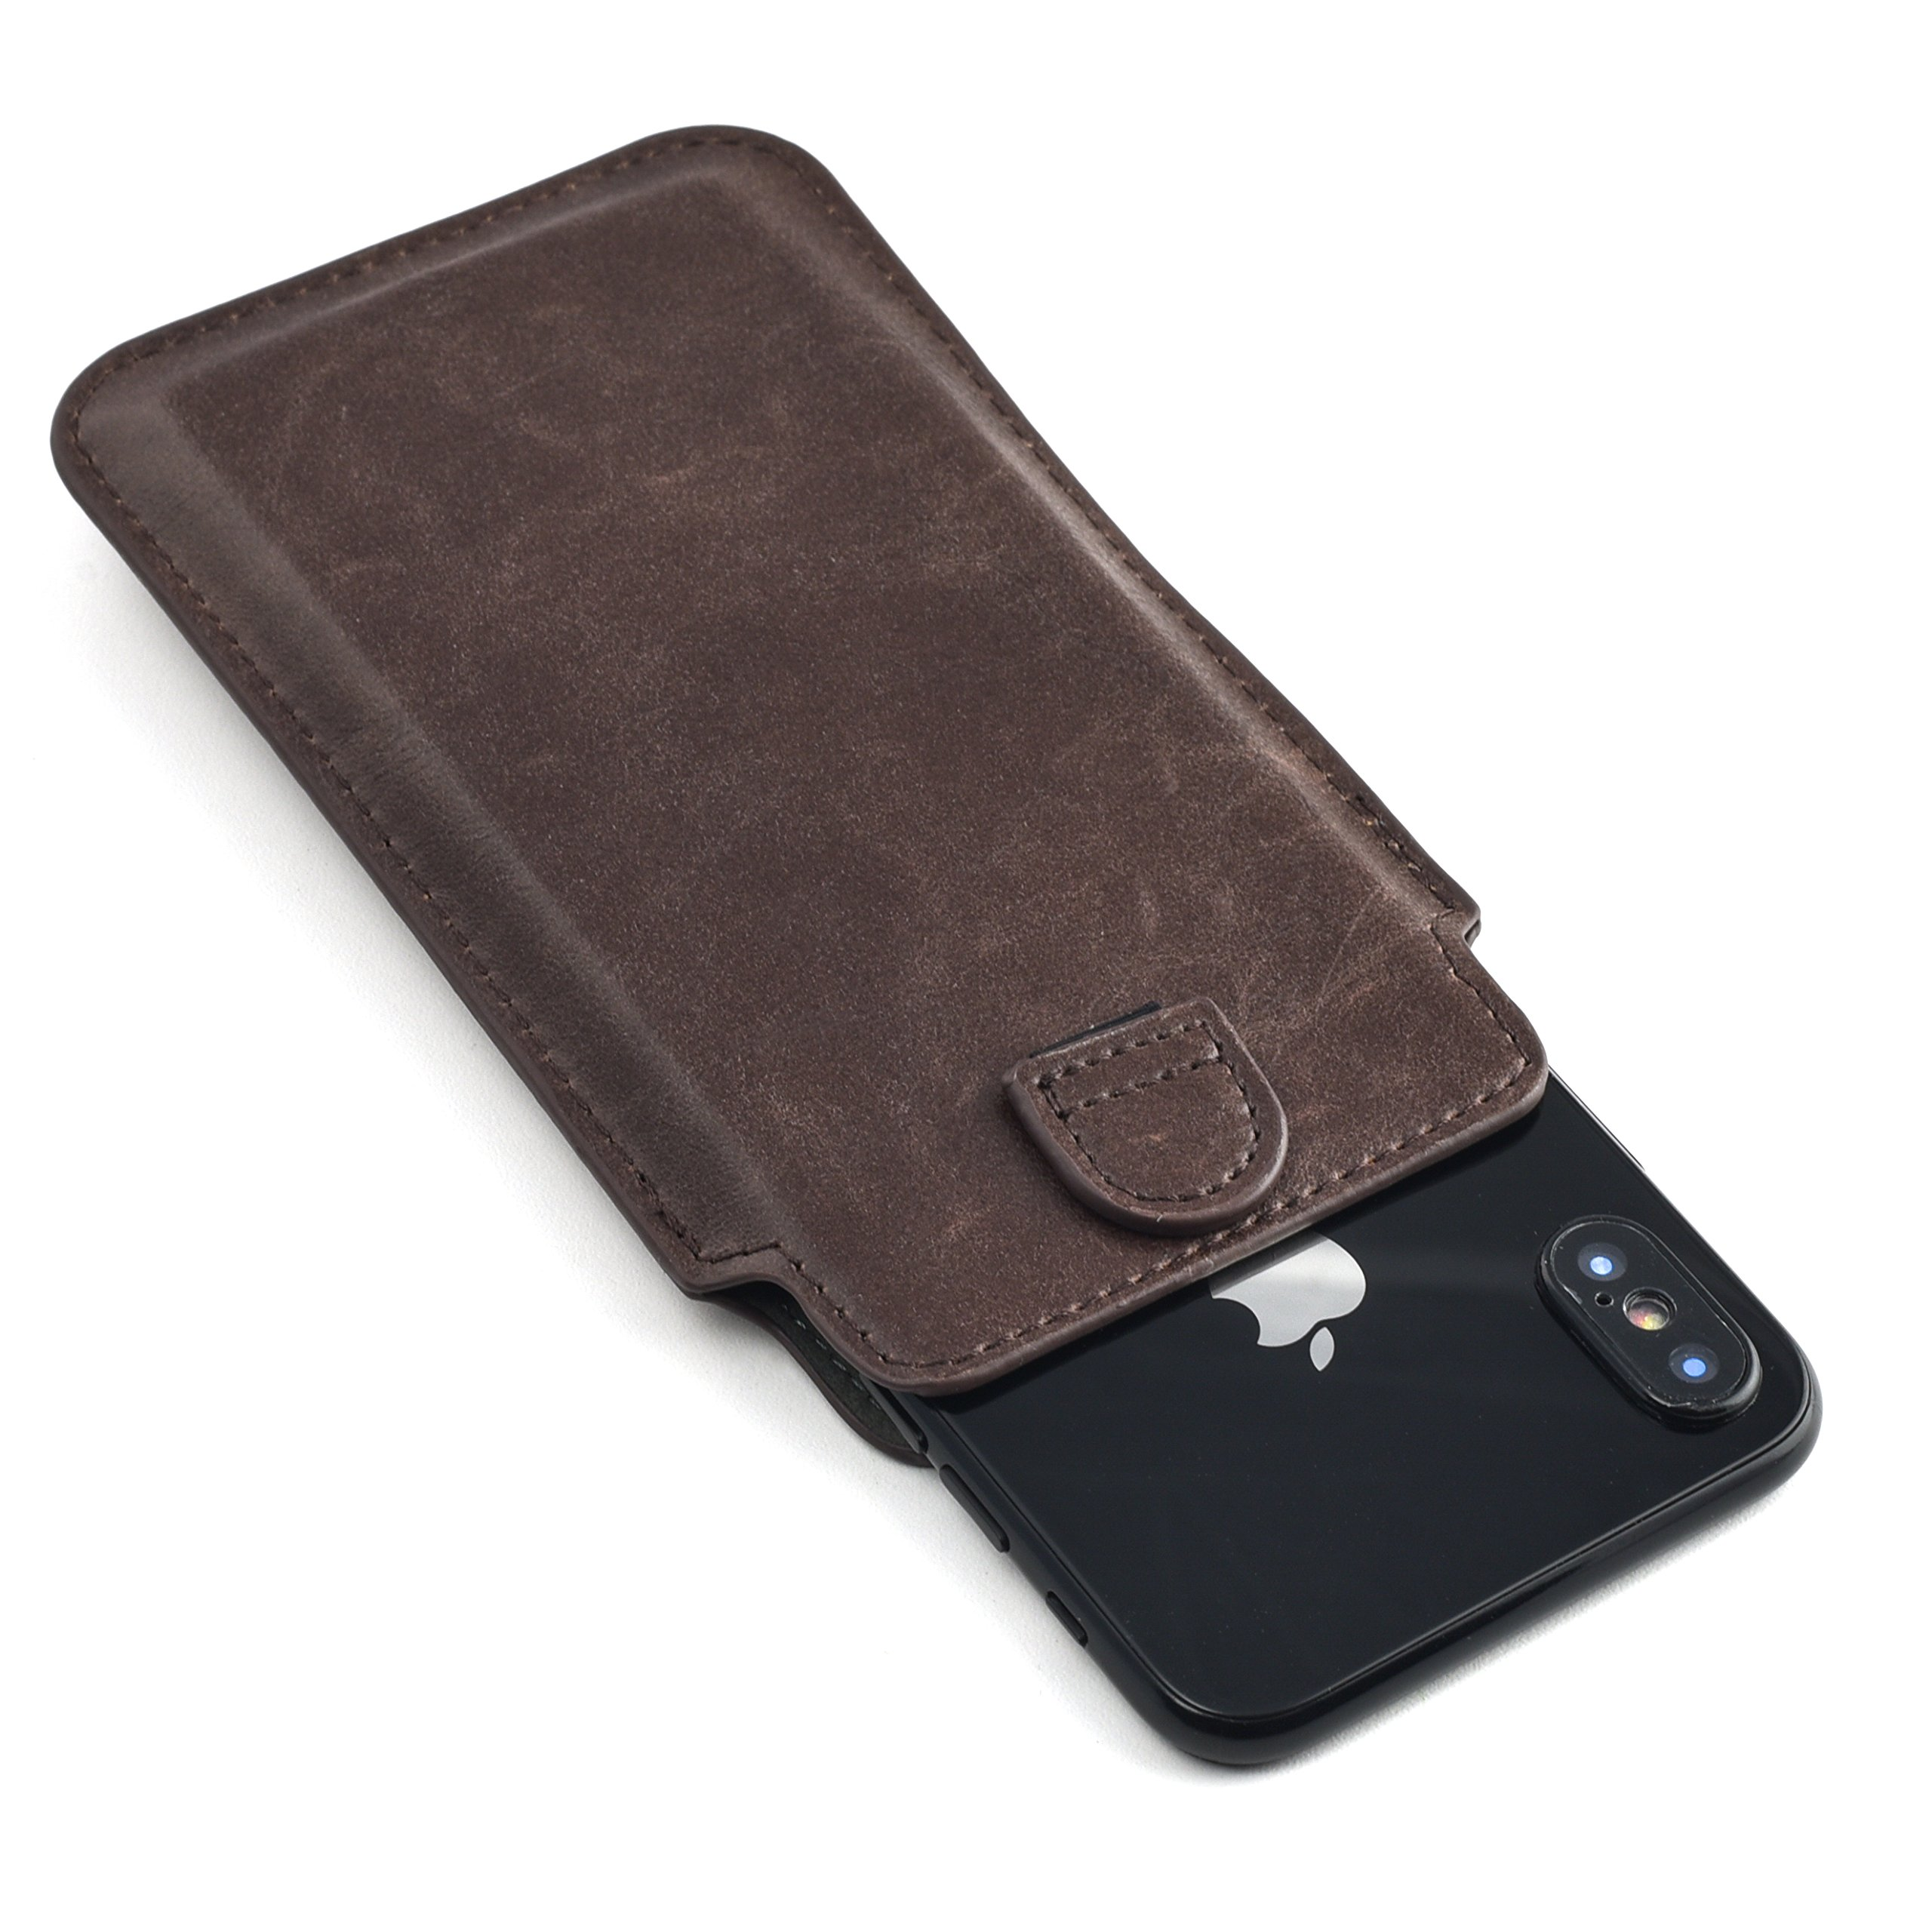 Dockem Provincial Wallet Sleeve for iPhone X; Ultra Slim Vintage Synthetic Leather Cover with 2 Card Holder Slots; Professional Executive Pouch Case [Brown] by Dockem (Image #2)